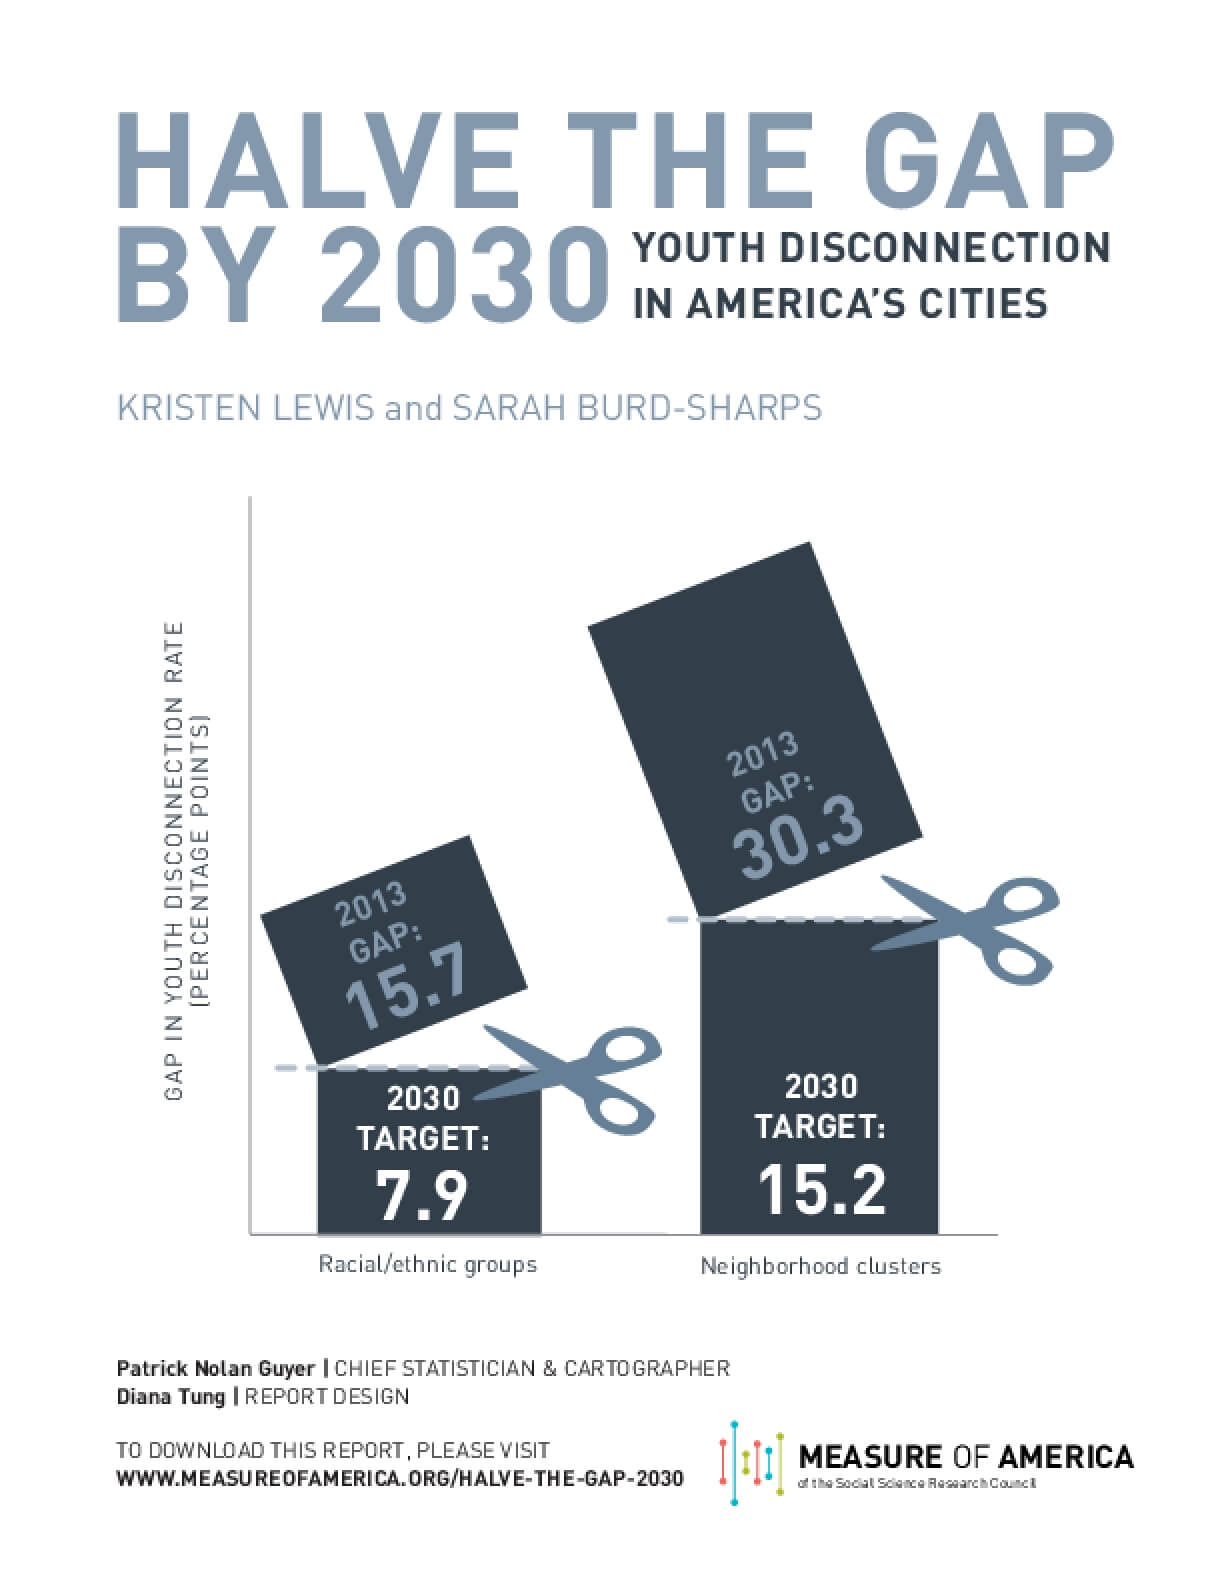 Halve the Gap by 2030: Youth Disconnection in America's Cities